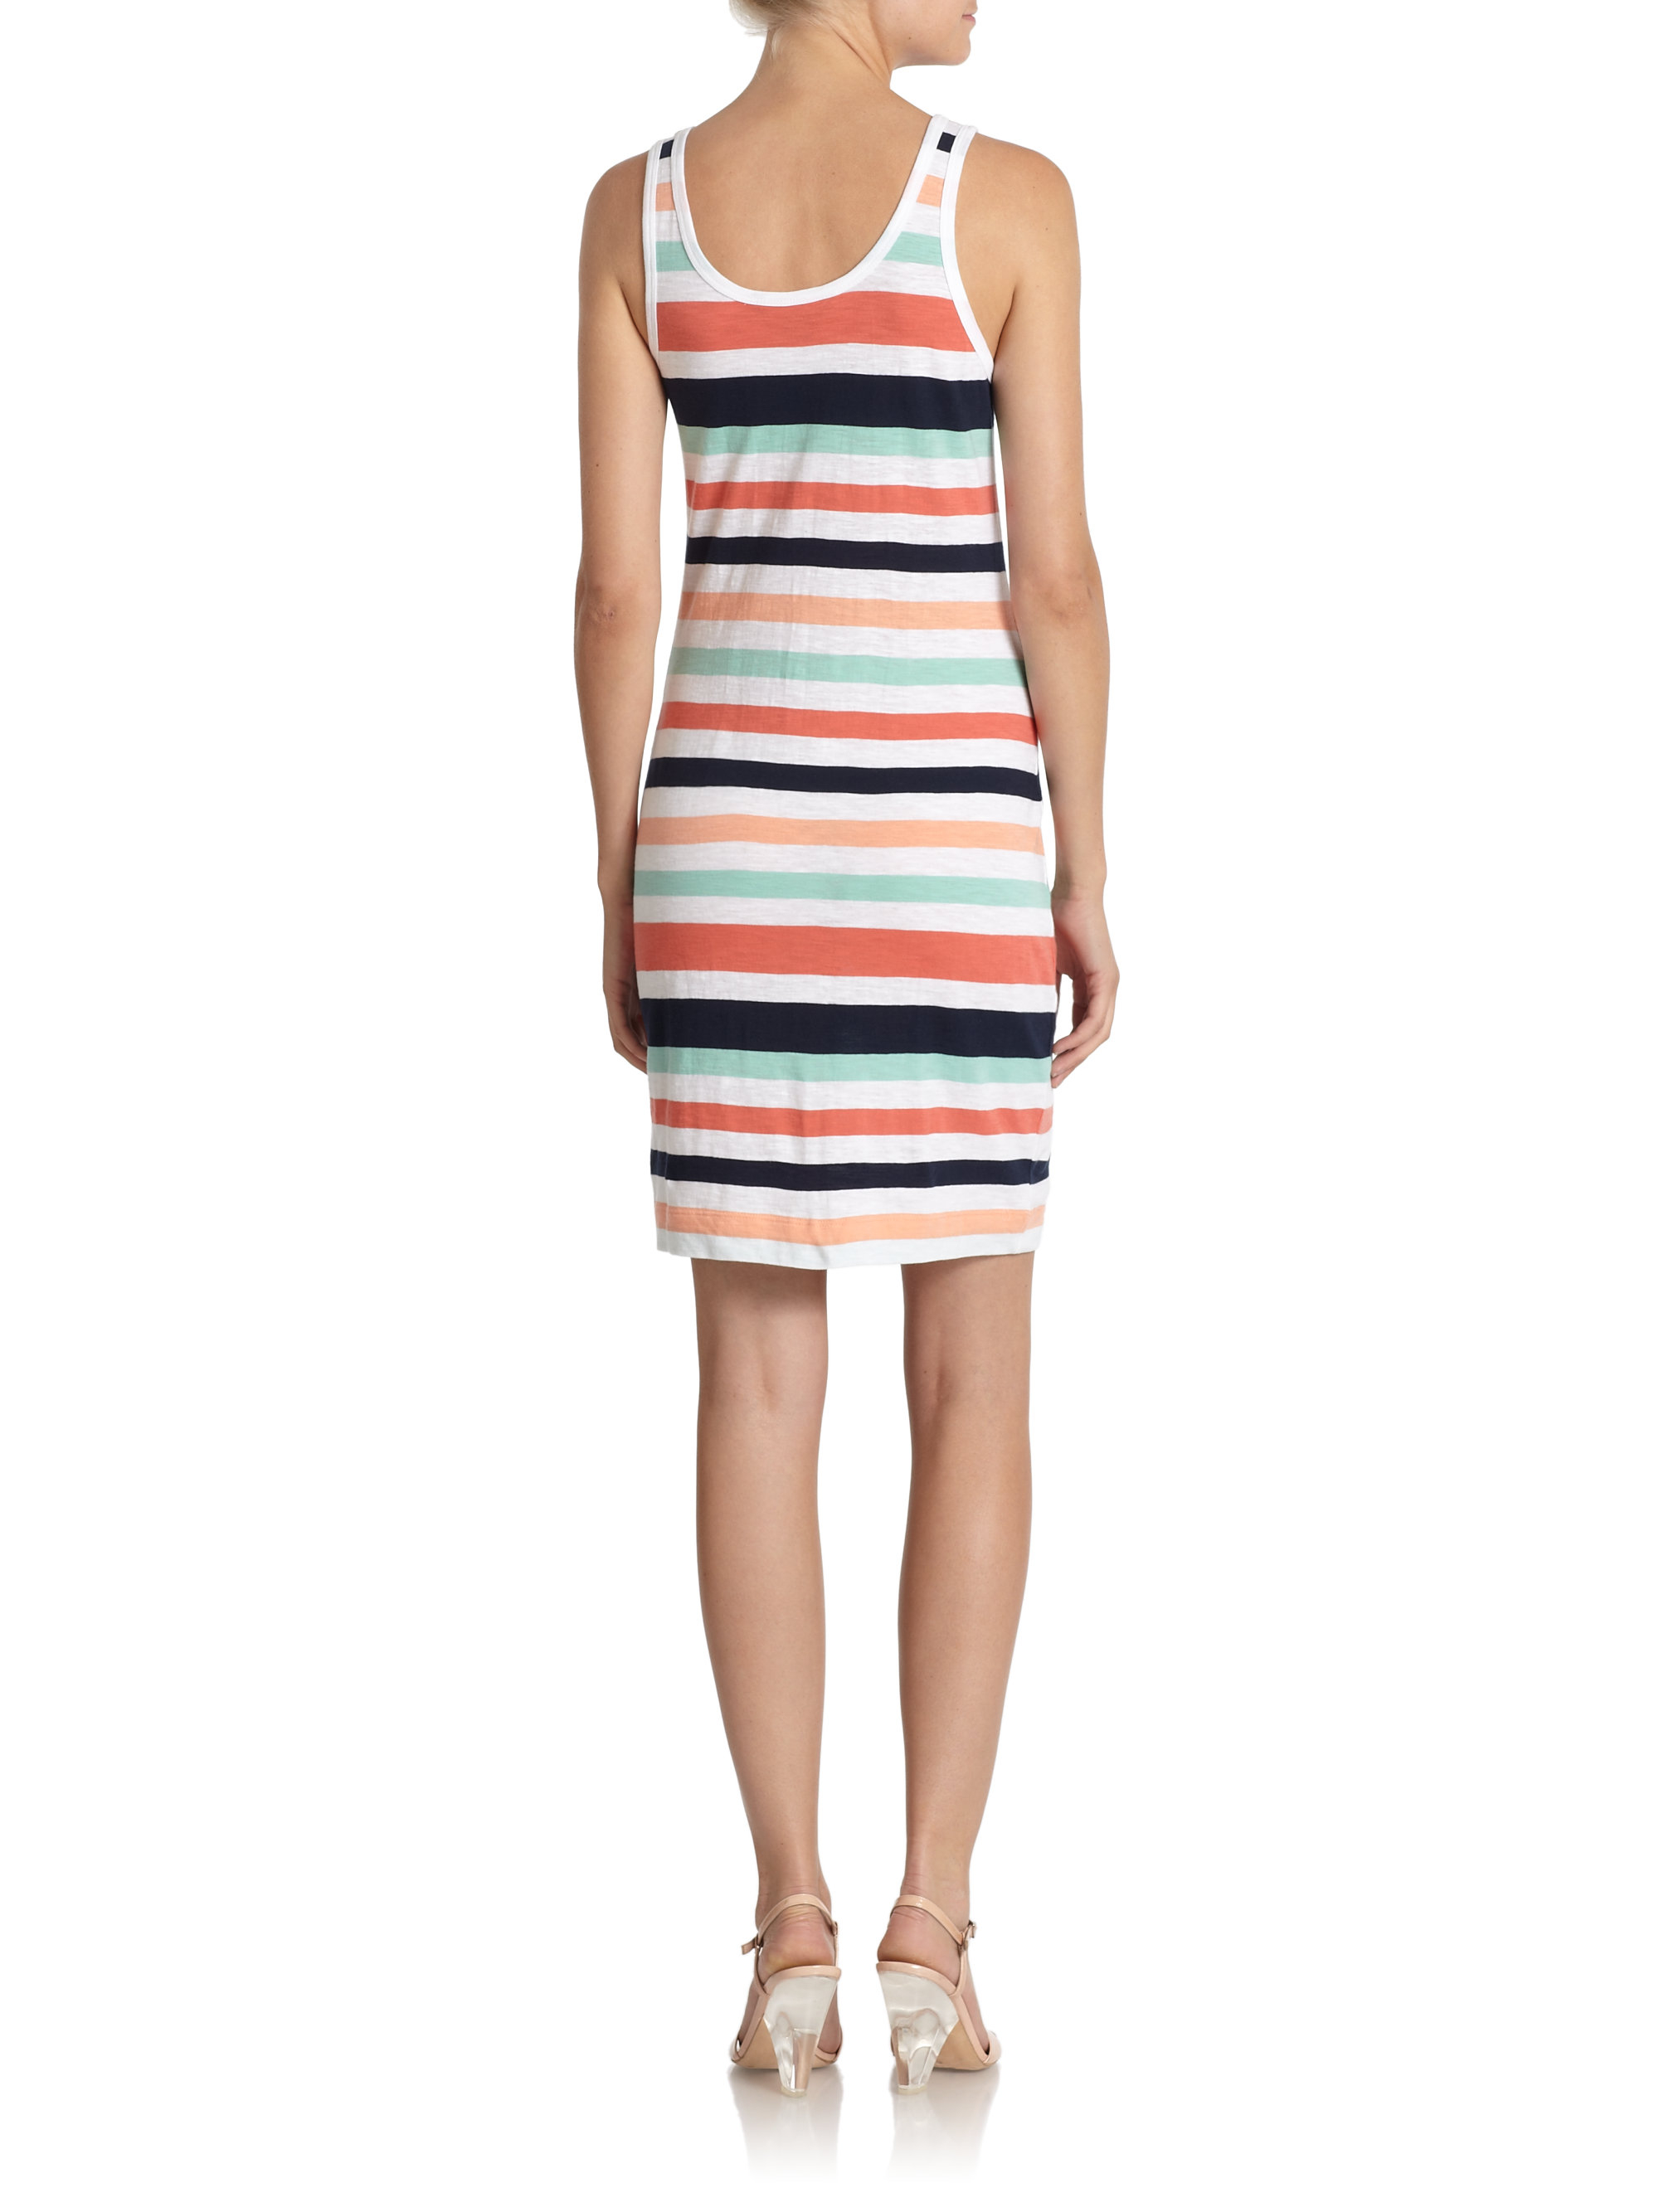 French connection Summer Stripe Tank Dress | Lyst